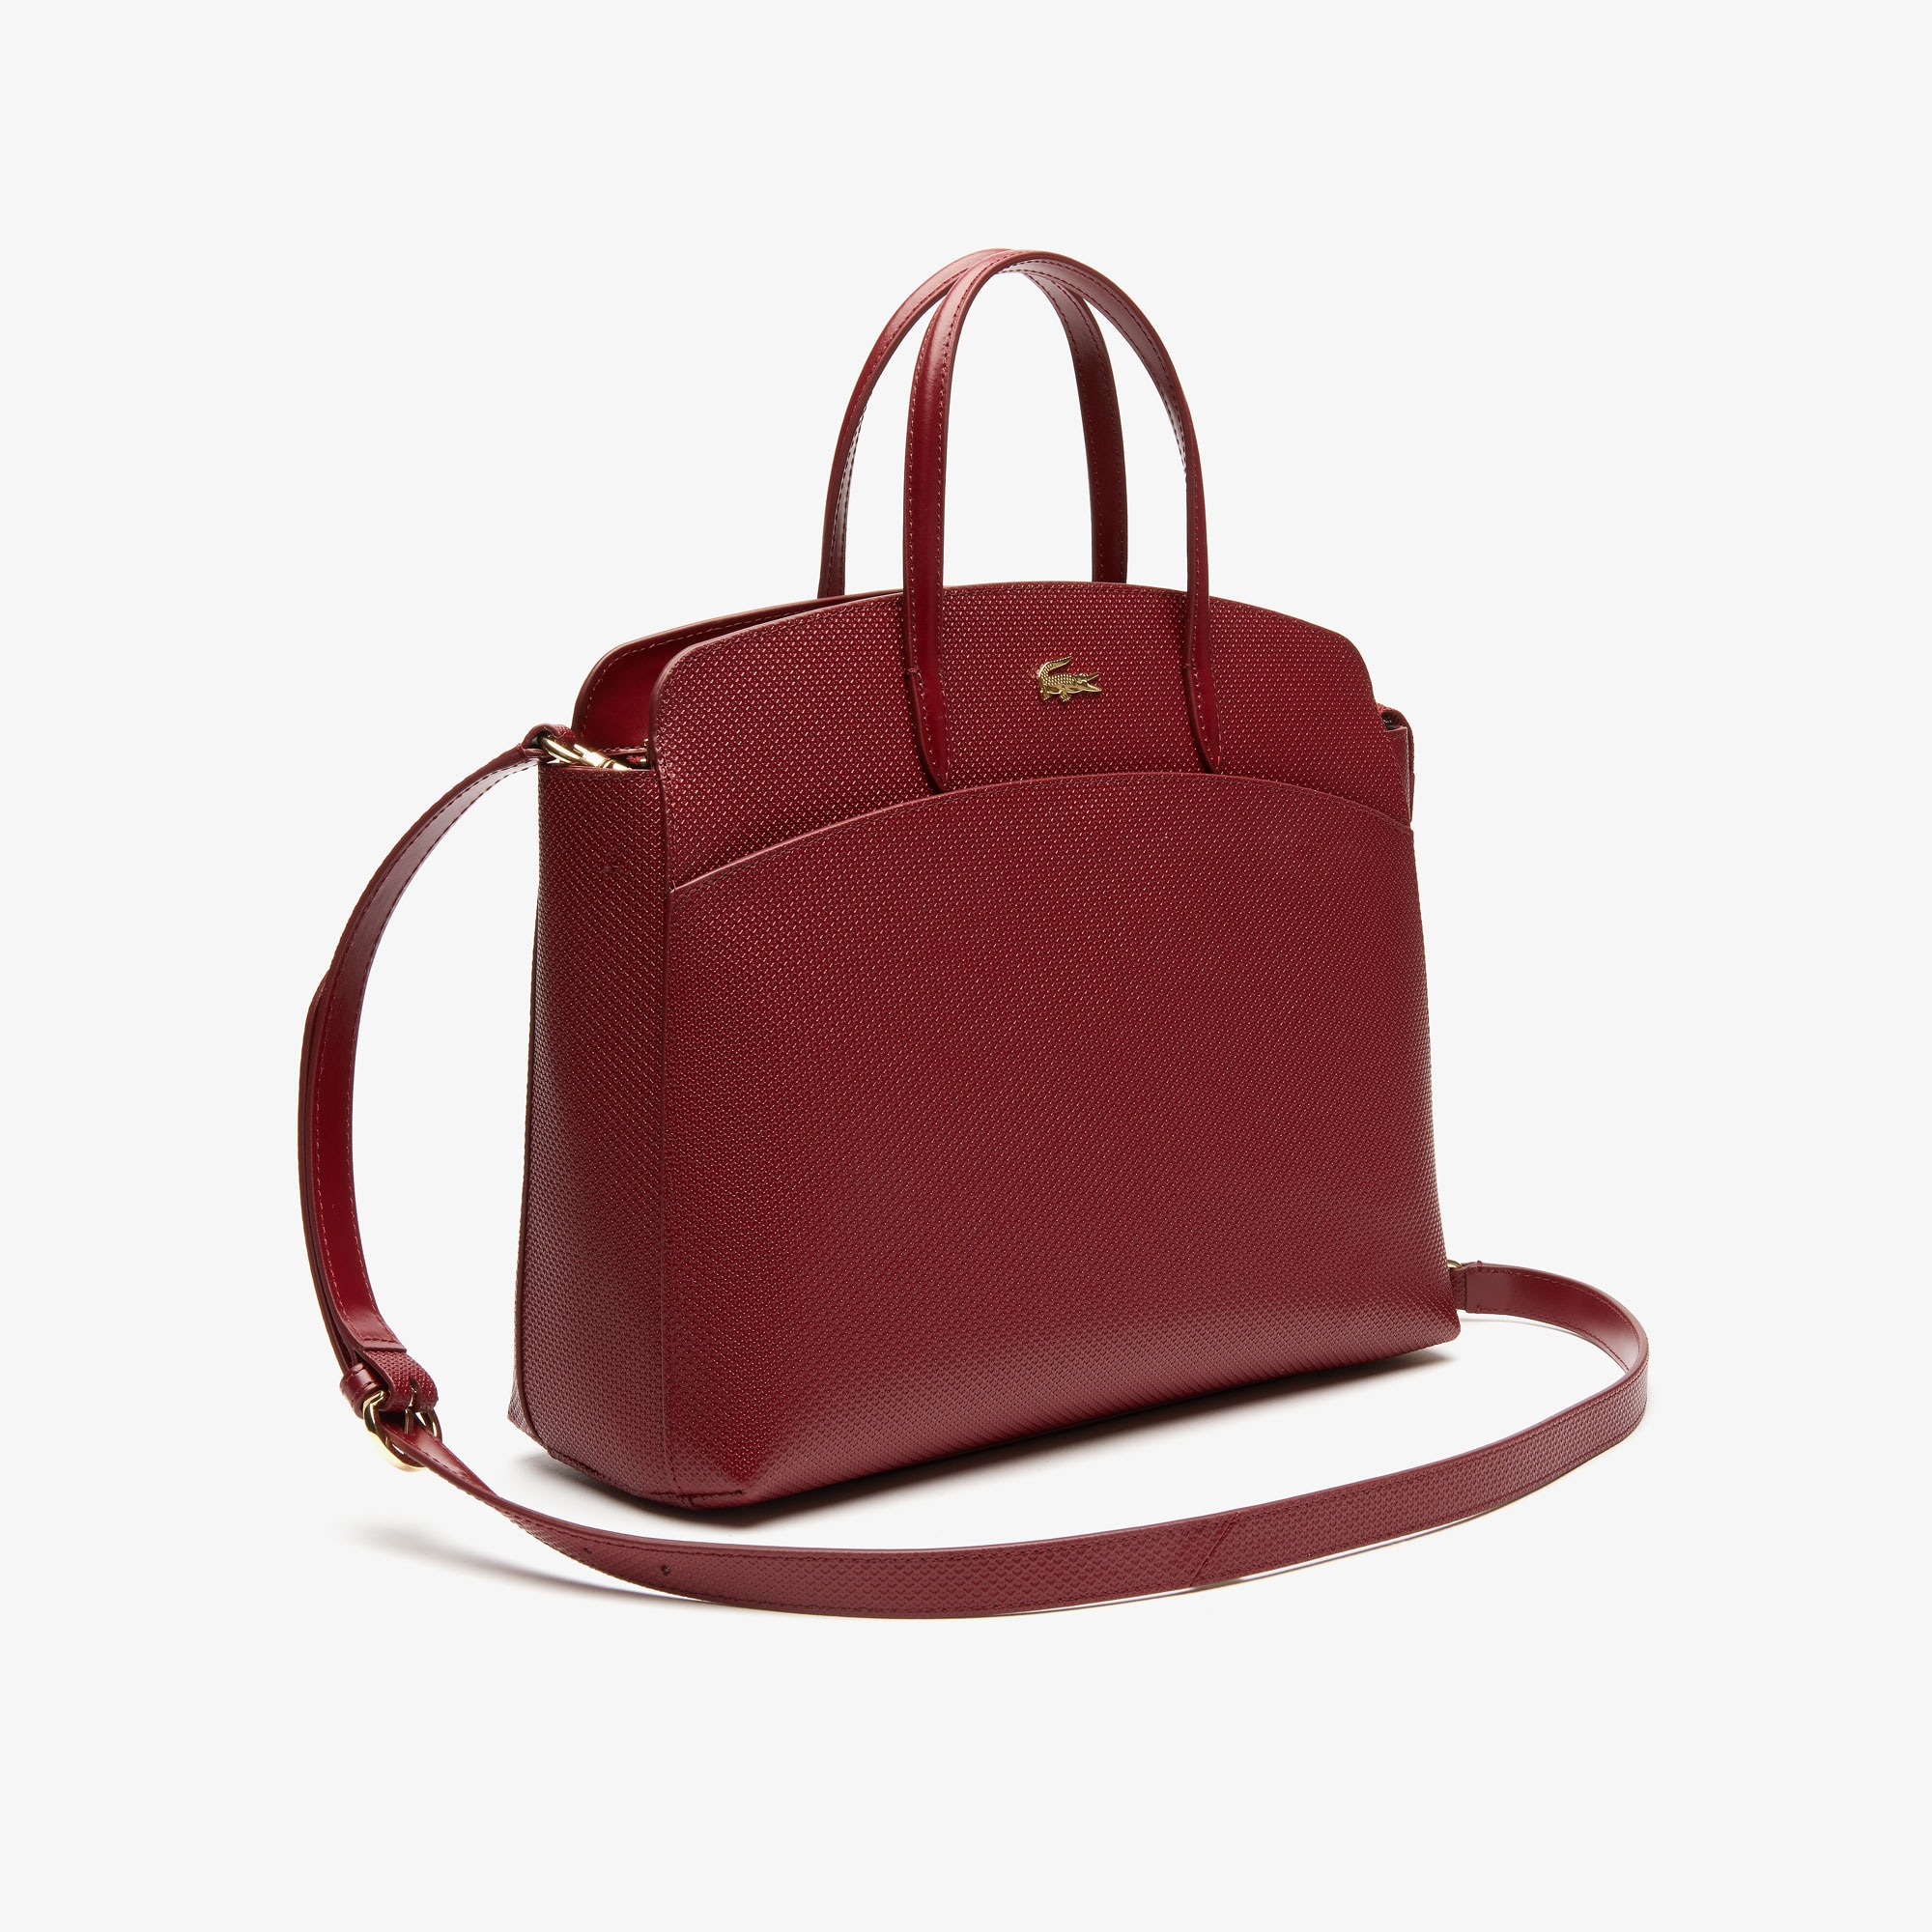 Women's Chantaco Piqué Leather Zip Pocket Tote Bag